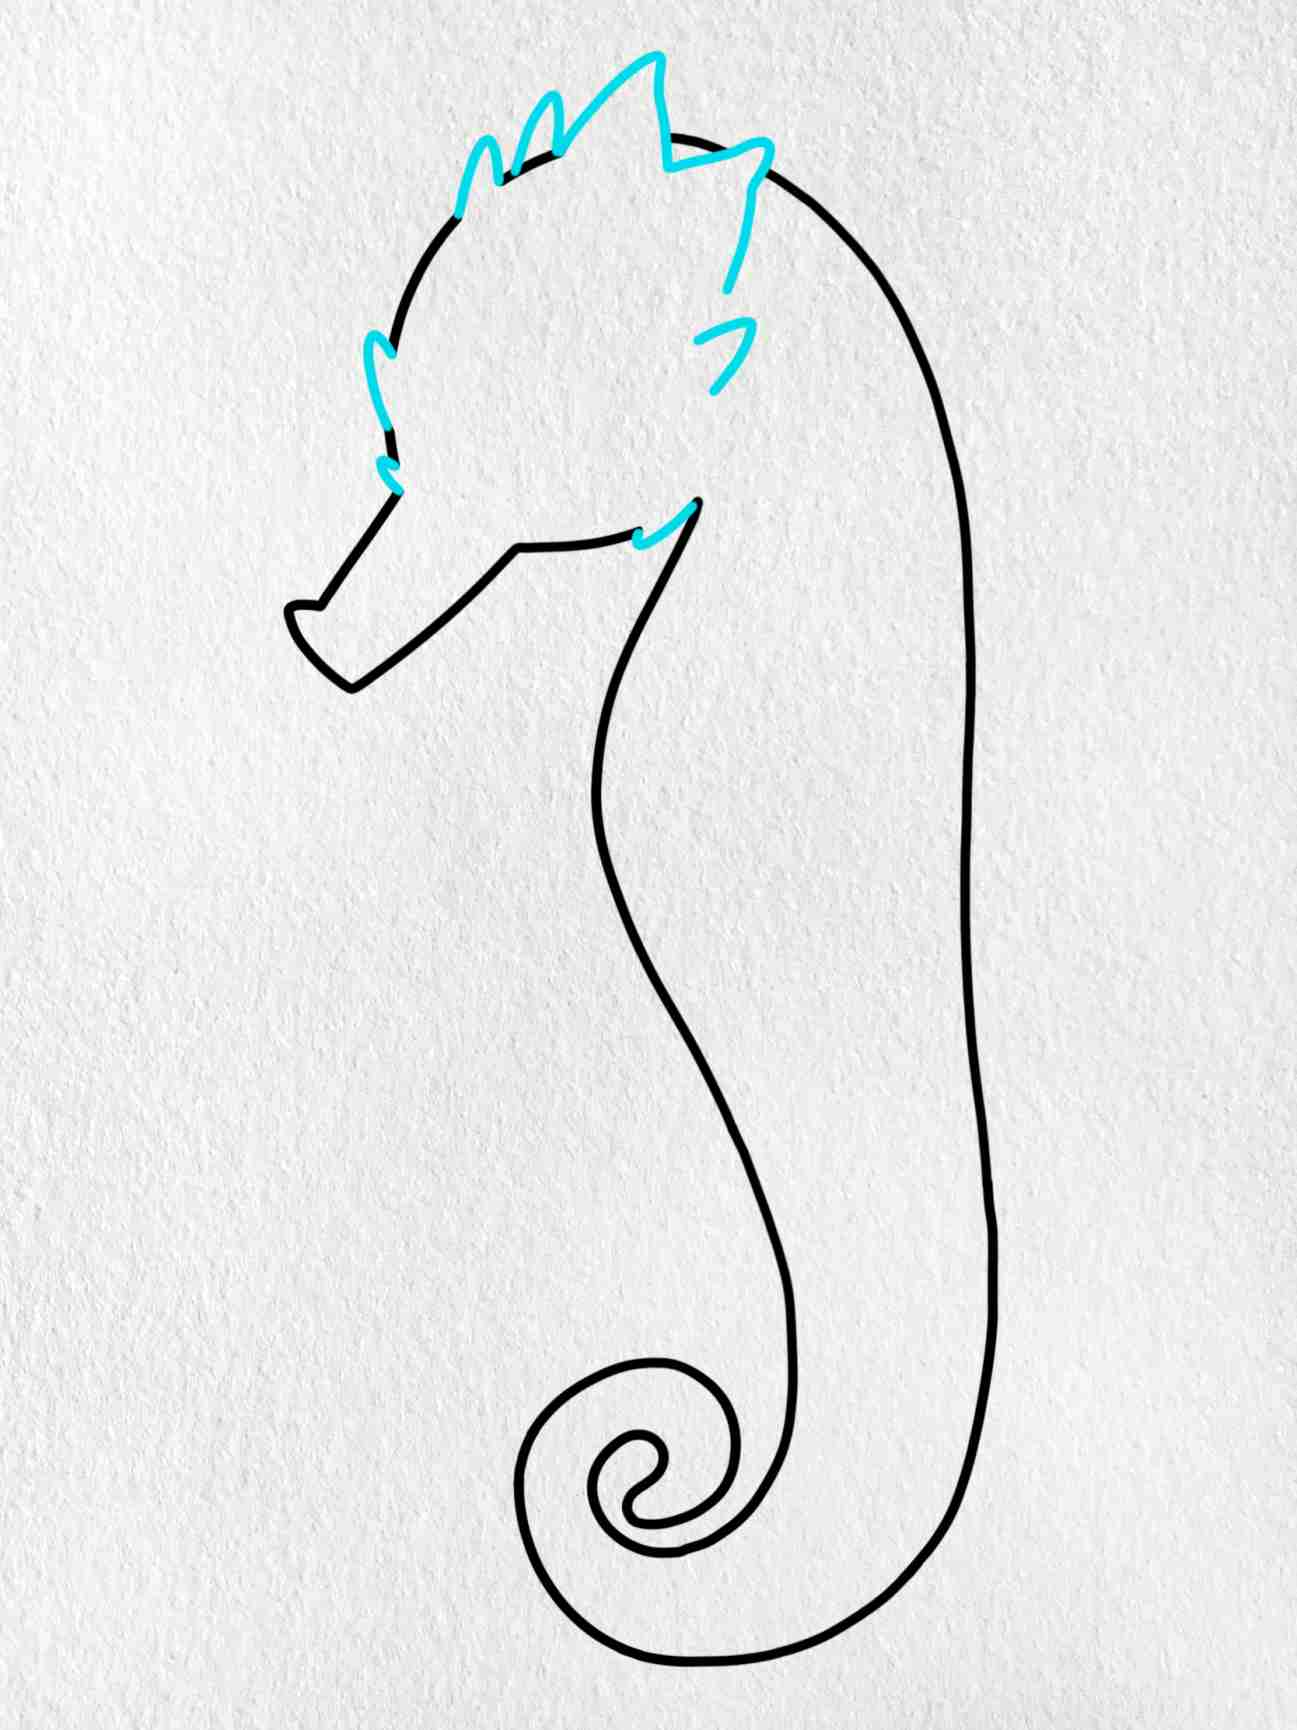 How To Draw A Seahorse: Step 4